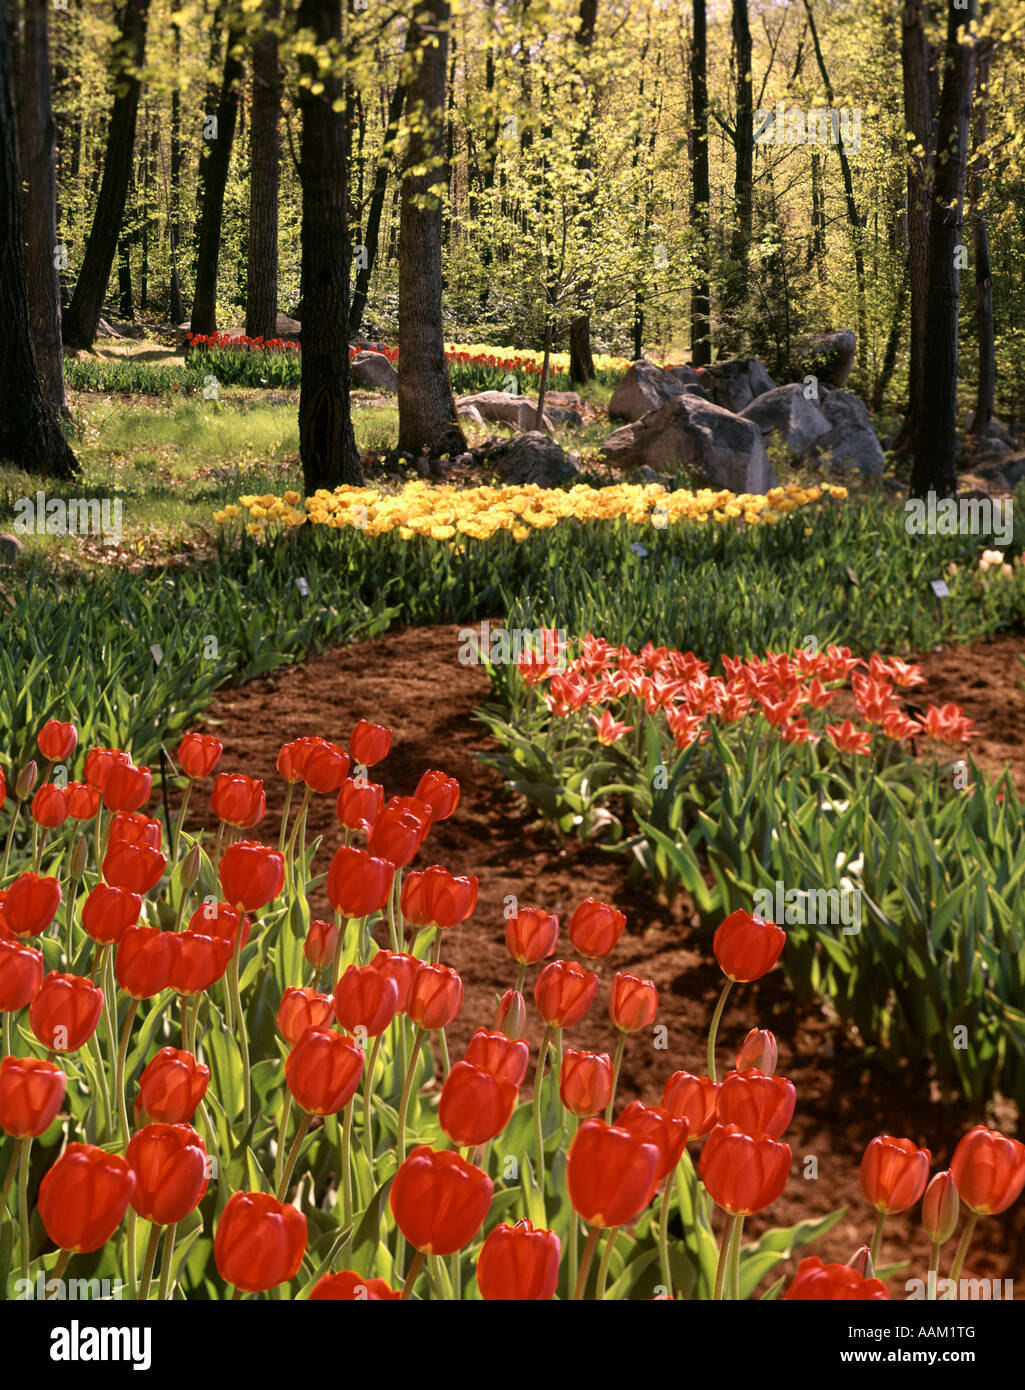 TREES TULIPS IN BLOOM SPRINGTIME STERLING FOREST GARDENS NY Stock ...